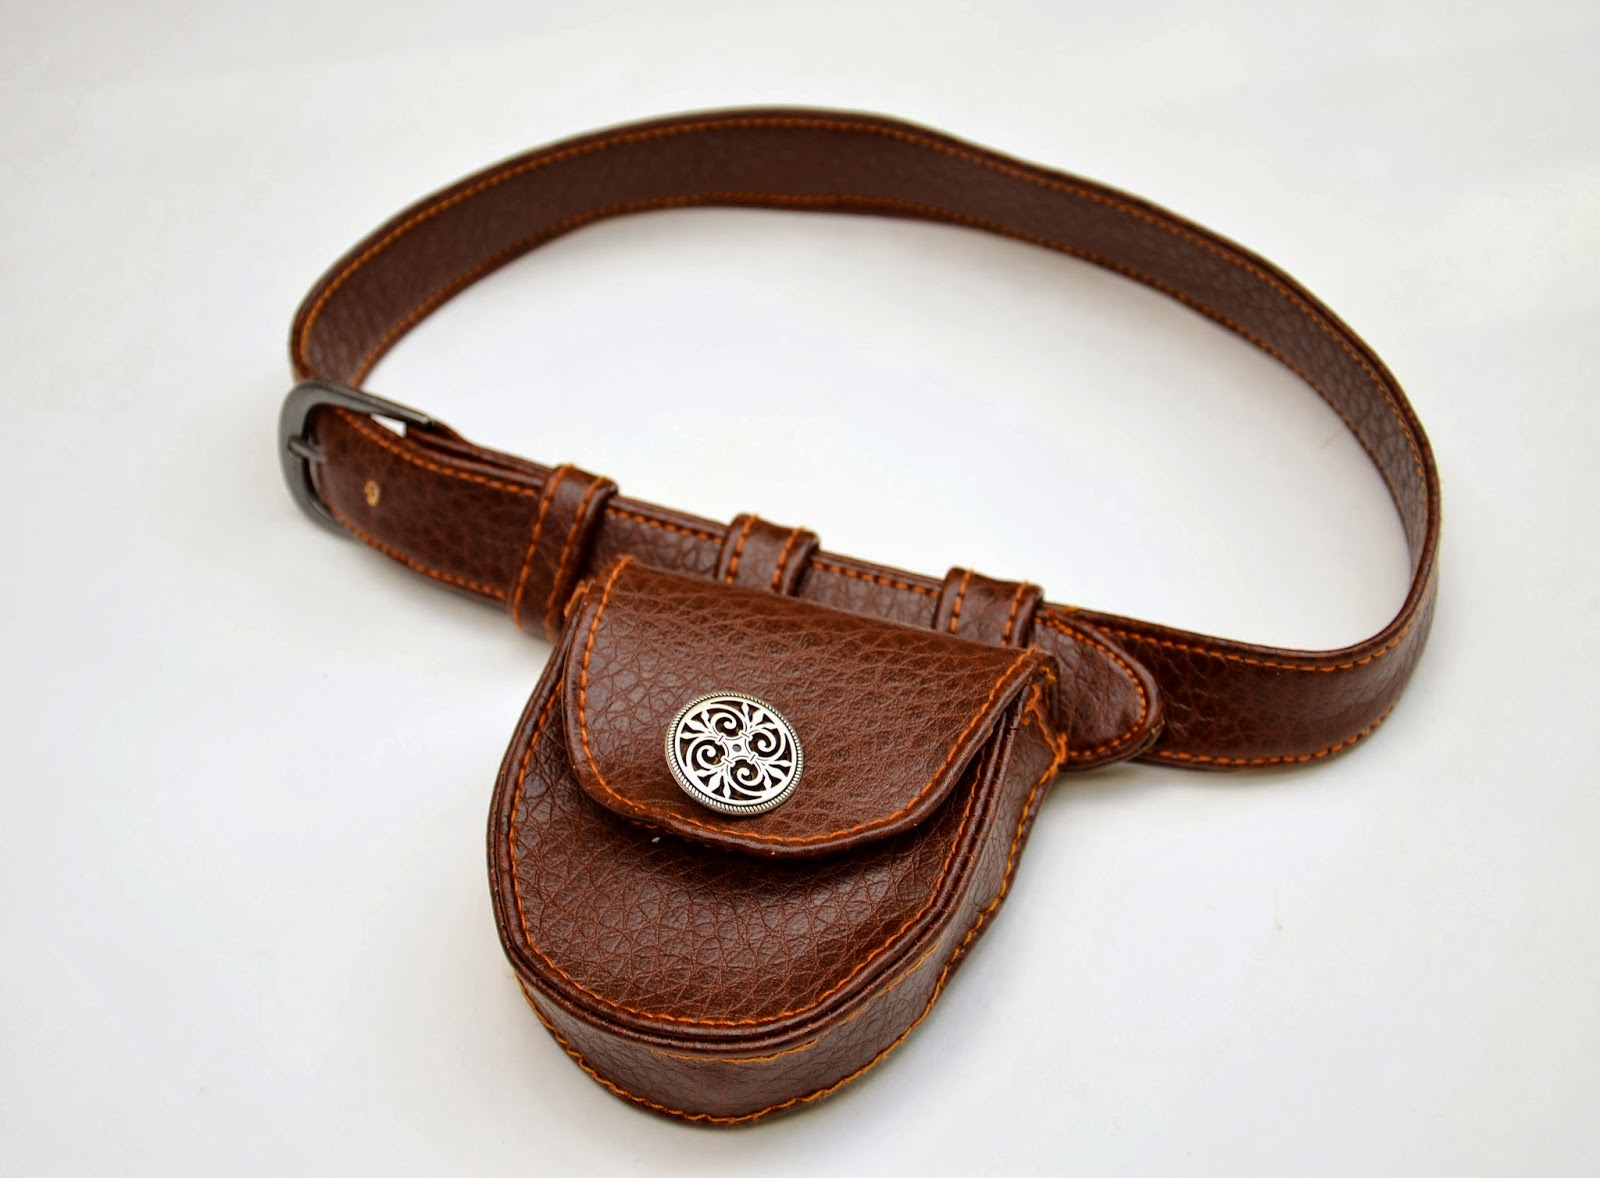 Narnia Lucy cordial belt